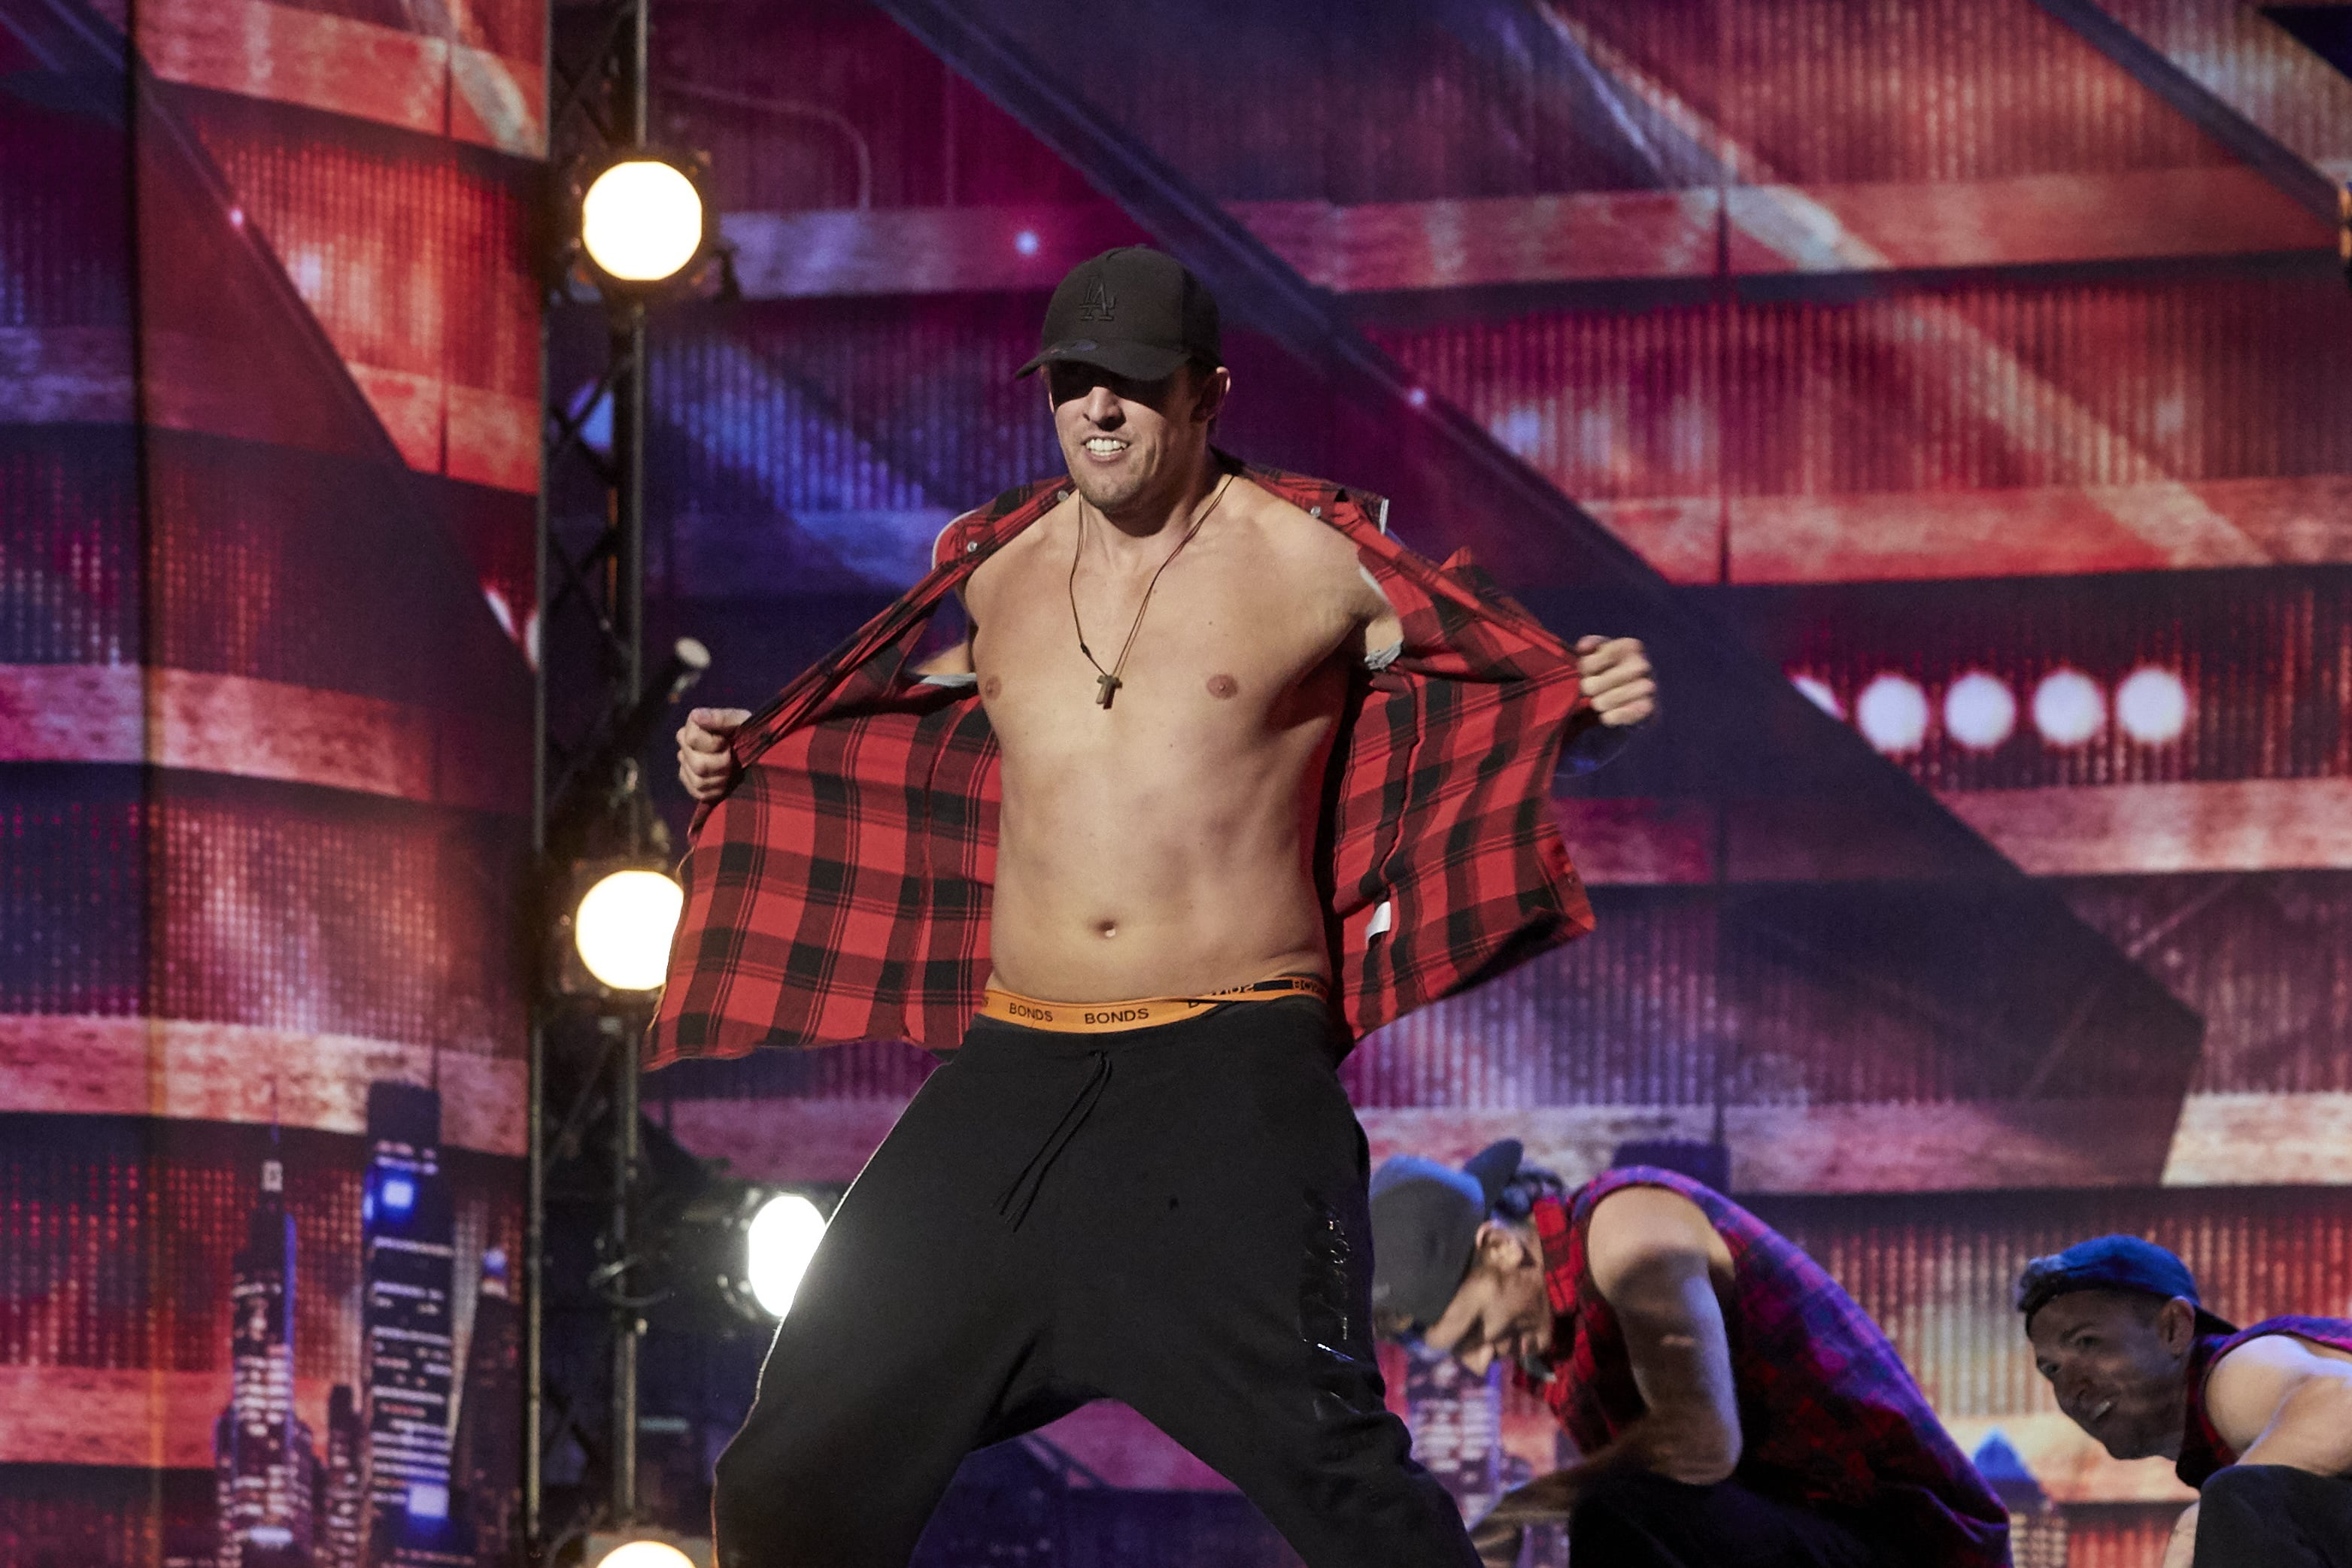 Australia's Got Talent auditions turn into Magic Mike